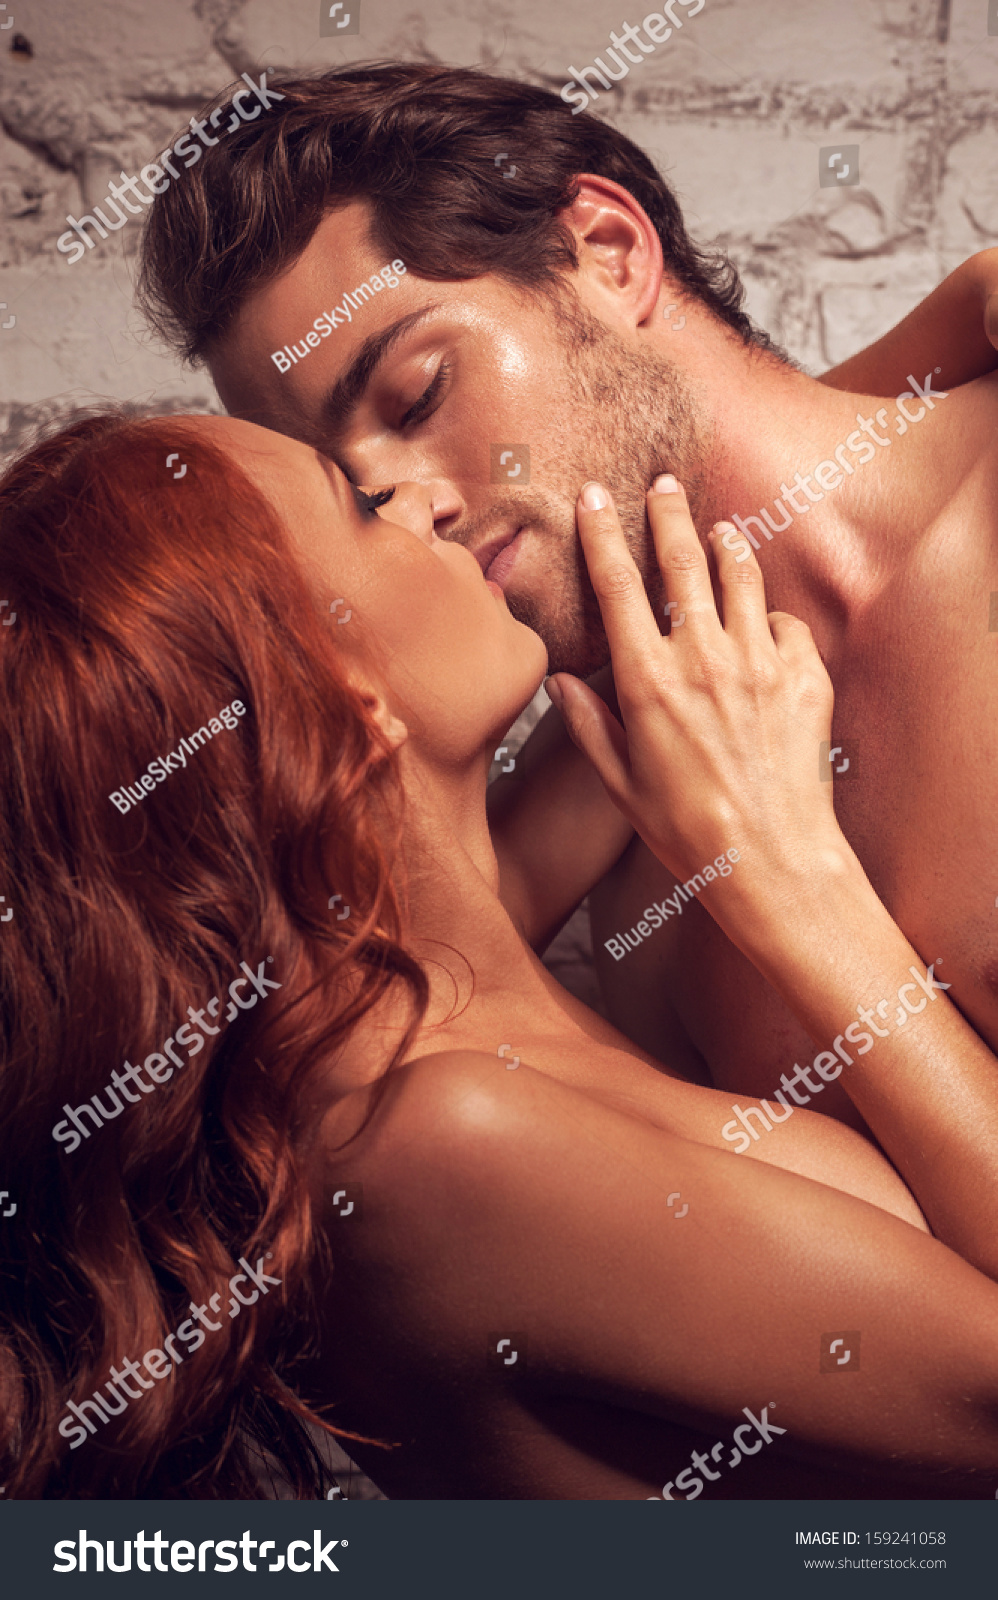 naked pictures of couples having sex